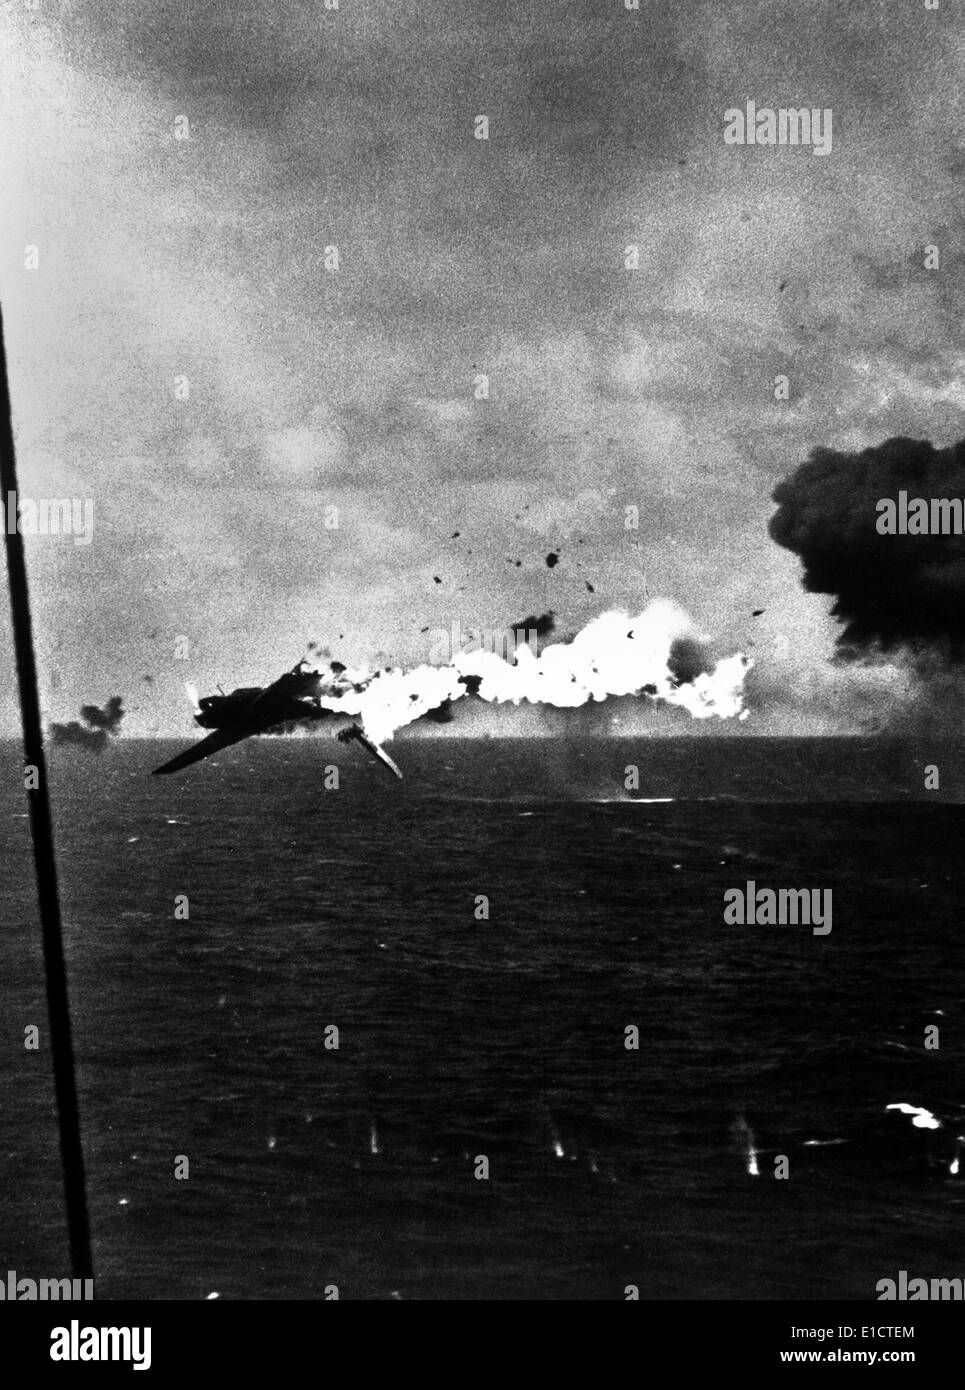 Japanese bomber explodes after direct hit by 5 inch shell from USS Yorktown, Dec. 4, 1943. Off Kwajalein Atoll. World War 2, - Stock Image